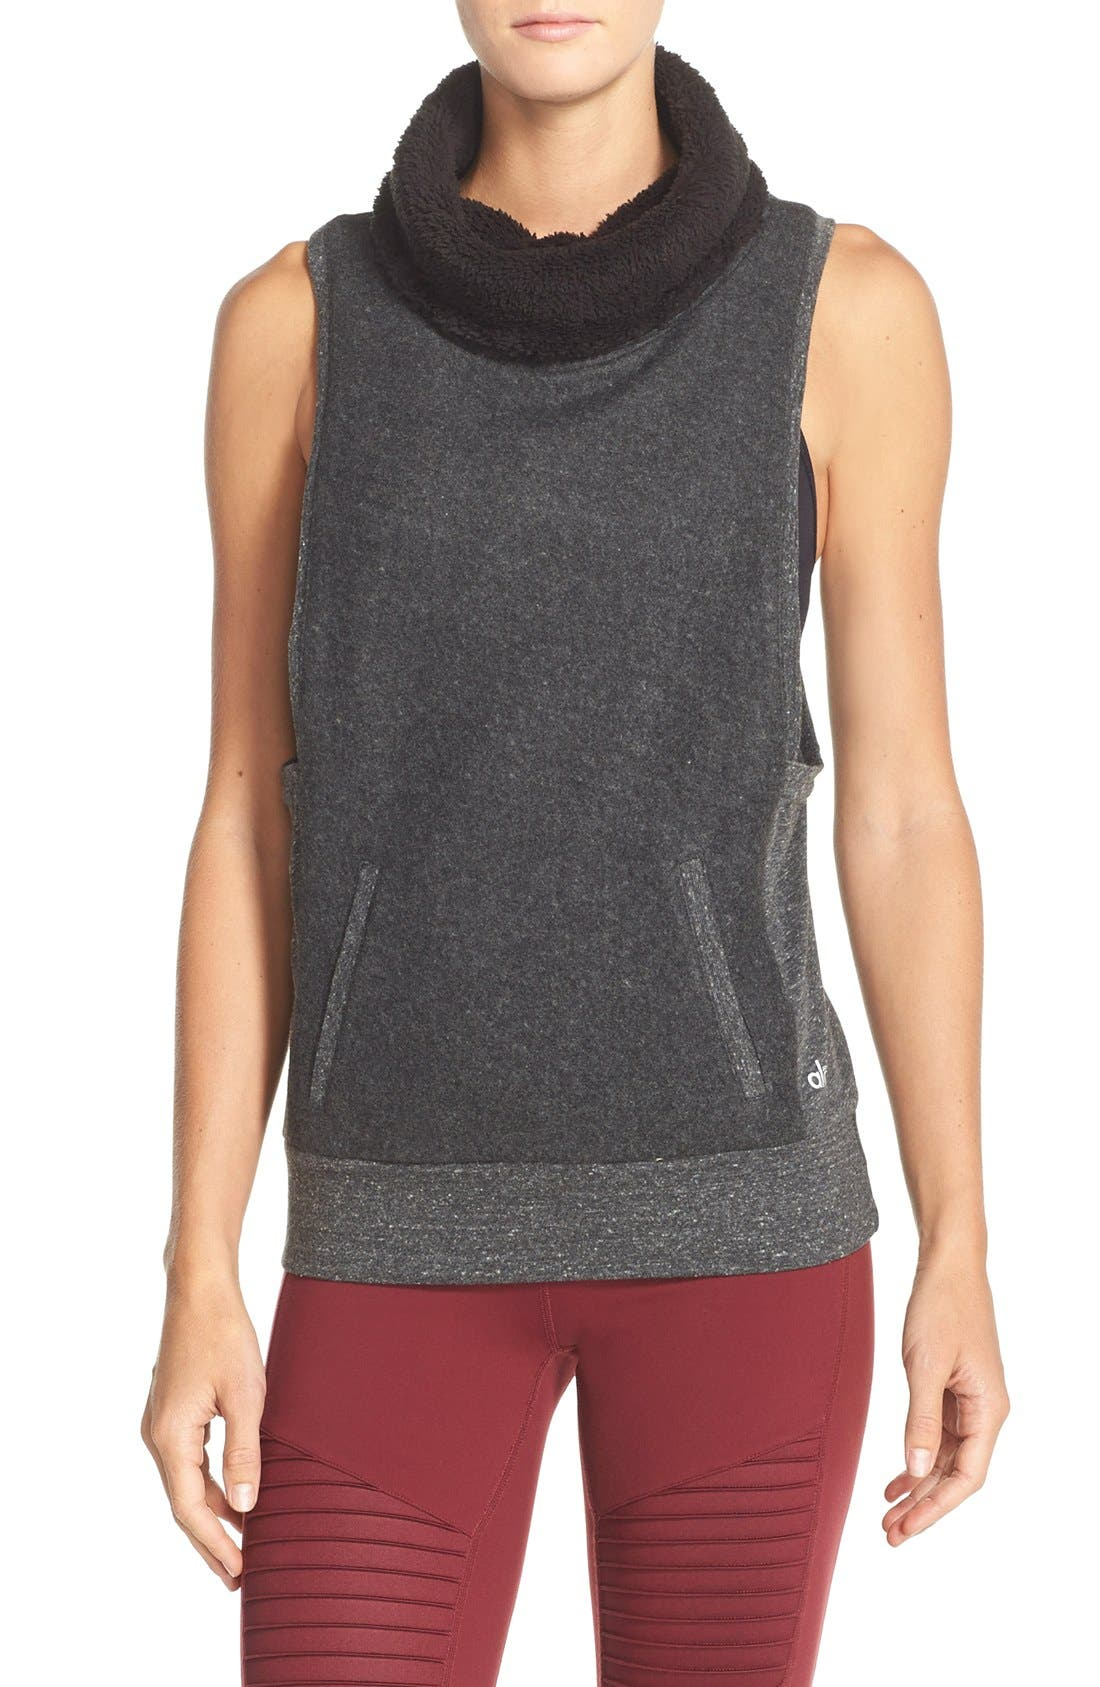 Alternate Image 1 Selected - Alo 'Frost' Sleeveless Pullover